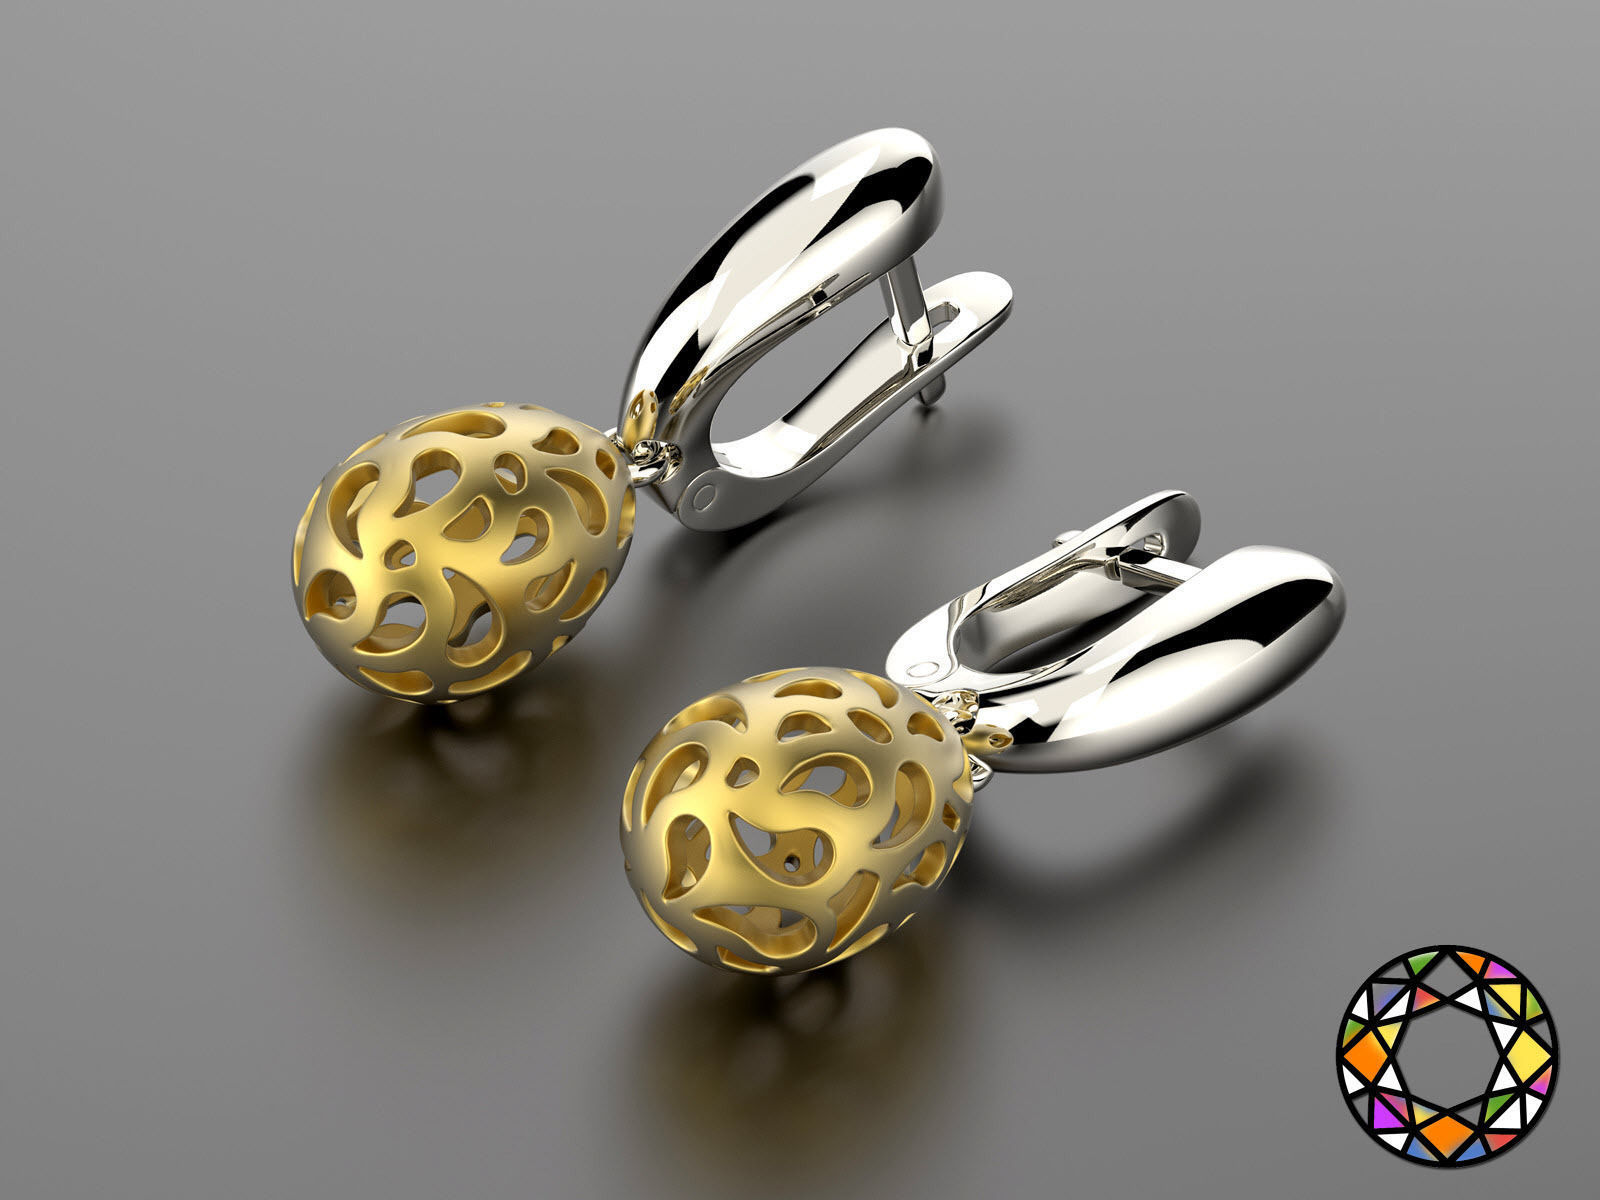 Easter eggs collection earrings set 6 hollow 0140